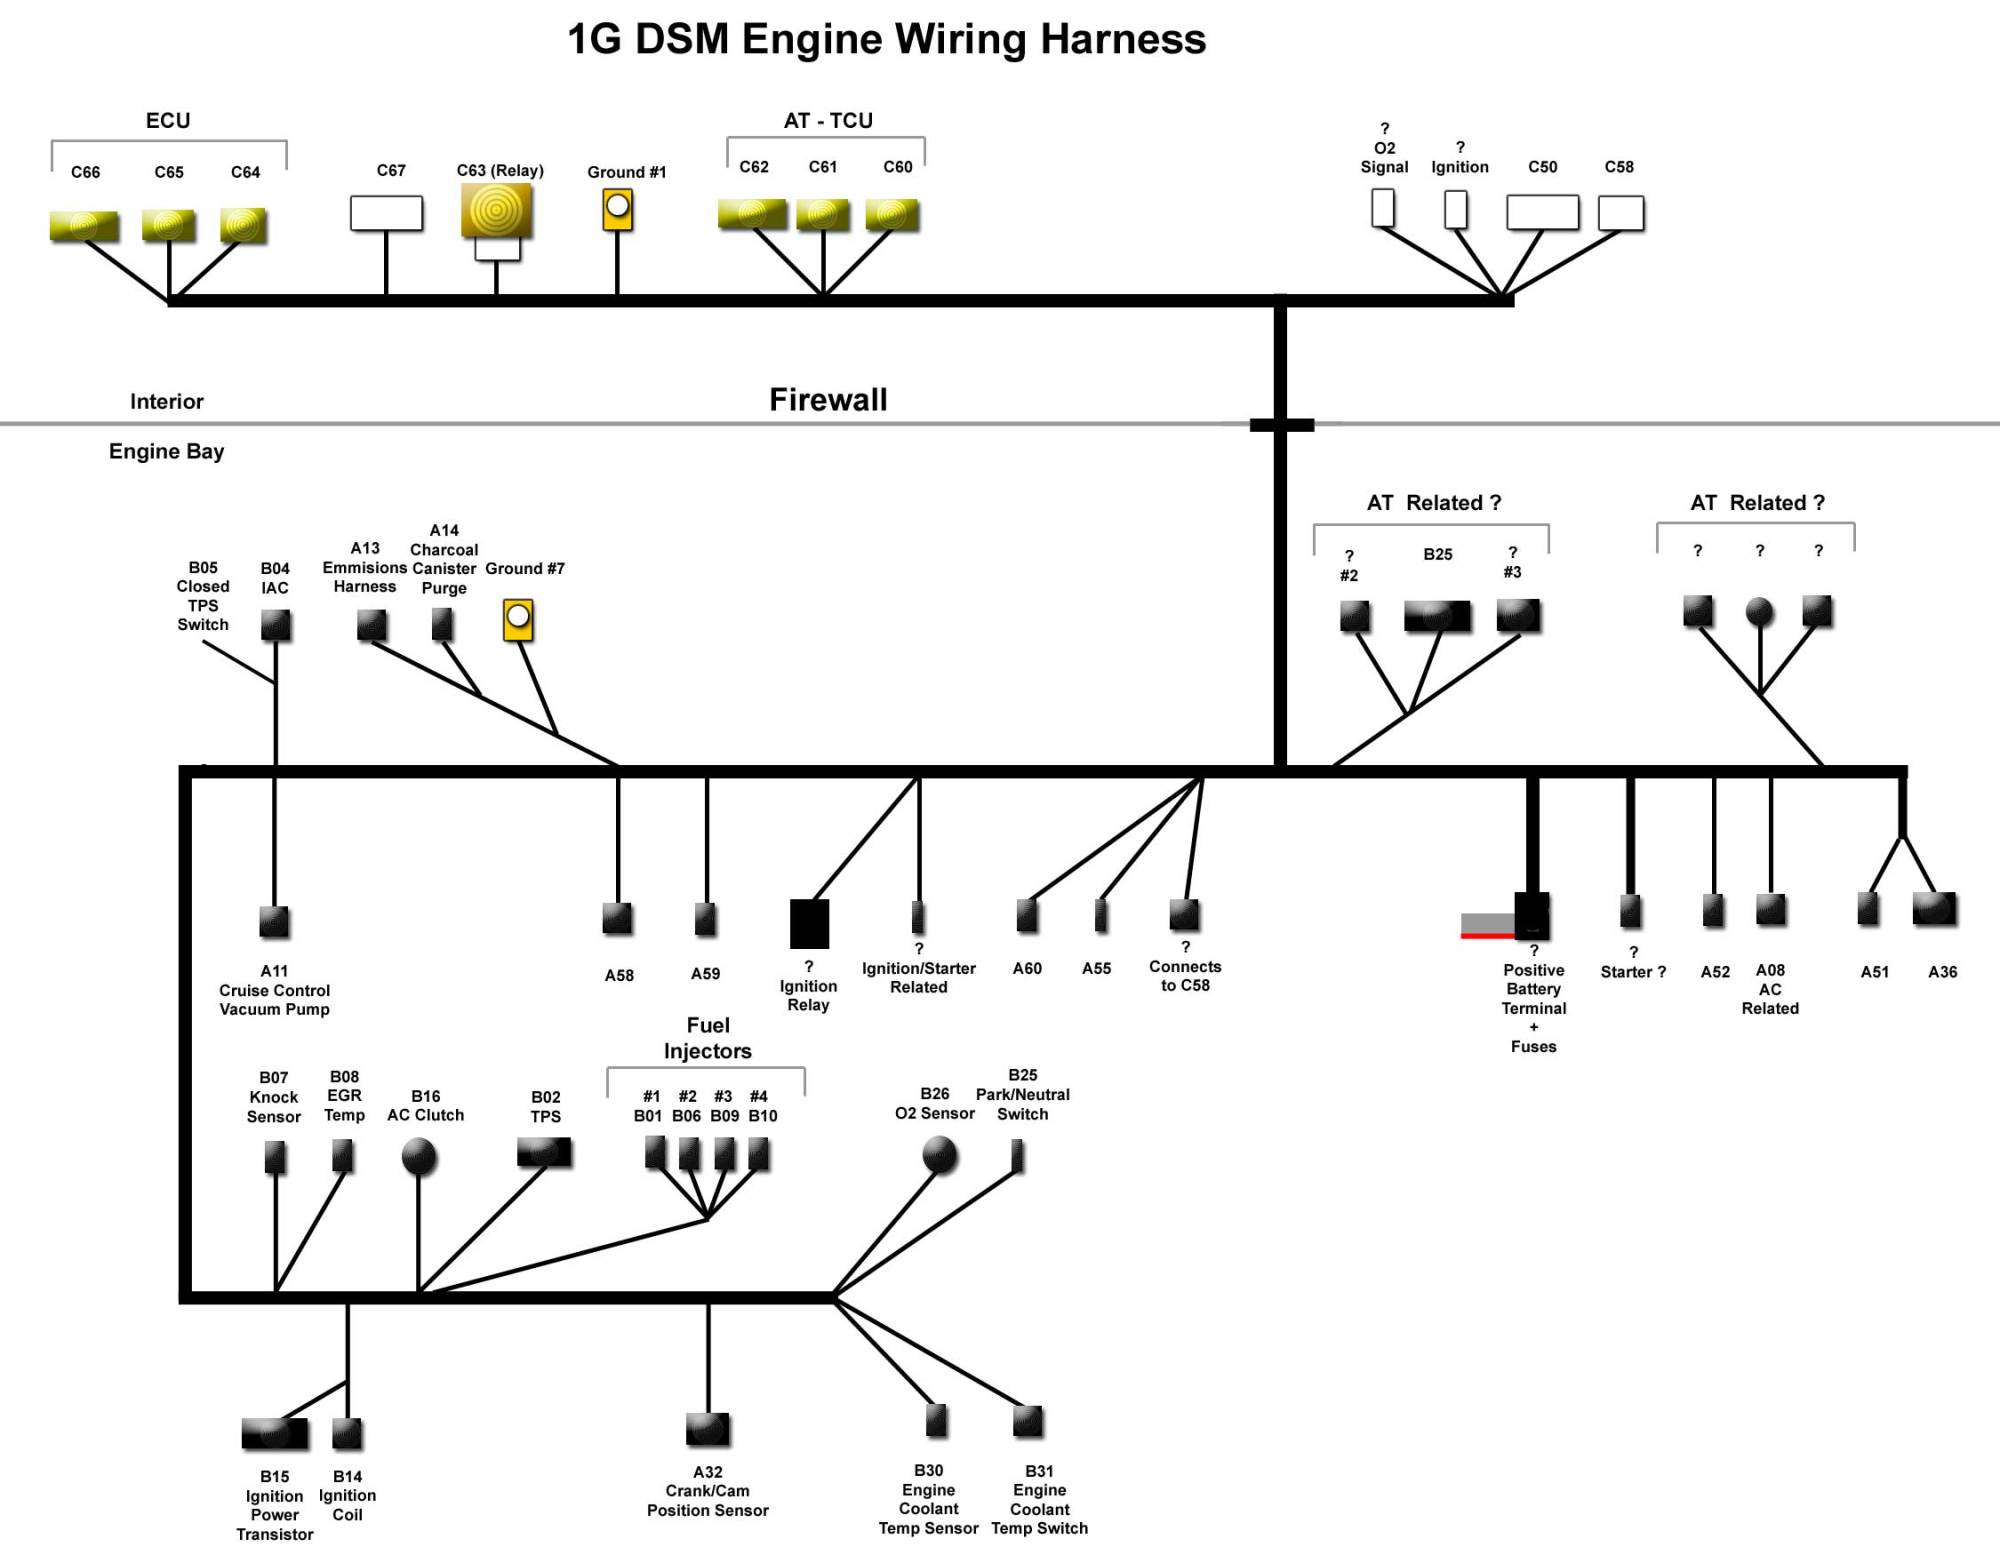 hight resolution of 1gb dsm 4g63 turbo wiring harness diagram 4g63 turbo engine diagram mitsubishi 4g63 engine diagram